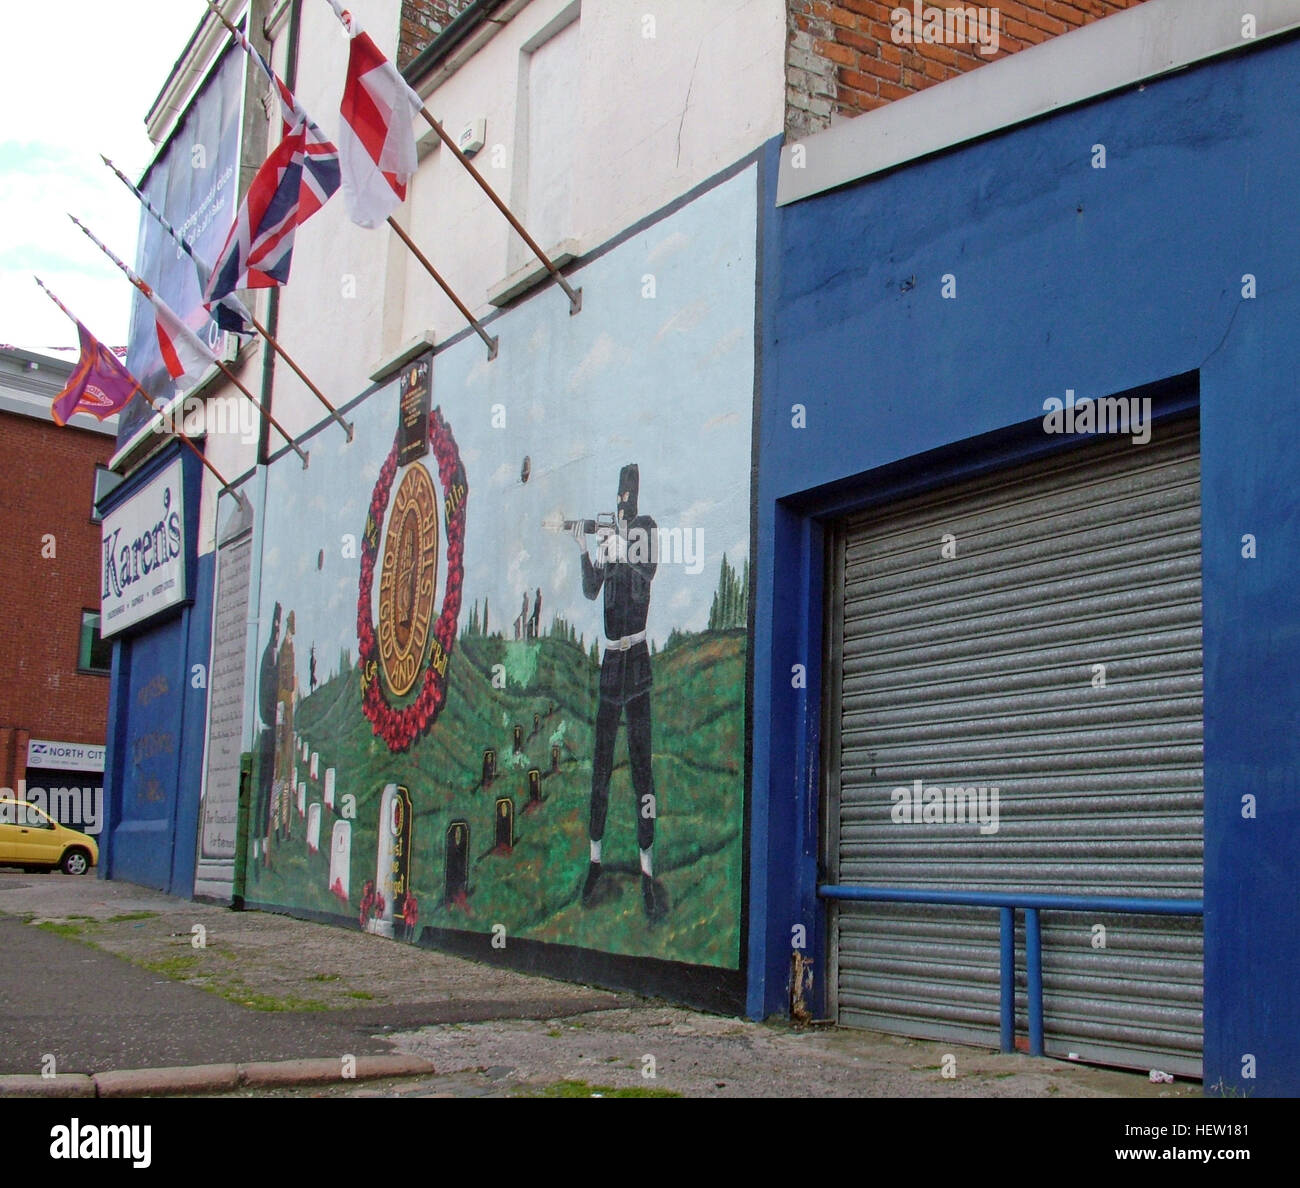 Unionist,British,Shankil,rd,painting,art,artist,martyr,fighter,para,paramilitary,soldier,wall,gable,end,gable end,community,protestant,Shankill Road Mural,West,West Belfast,NI,Northern Ireland,GoTonySmith,@HotpixUK,Tony,Smith,UK,GB,Great,Britain,United,Kingdom,Irish,British,Ireland,problem,with,problem with,issue with,NI,Northern,Northern Ireland,Belfast,City,Centre,Art,Artists,the,troubles,The Troubles,Good Friday Agreement,Peace,honour,painting,wall,walls,tribute,unionism,Fight,Justice,West,Beal,feirste,martyrs,social,tour,tourism,tourists,urban,six,counties,6,backdrop,county,Antrim,DUP,democratic Unionist,red hand,of Ulster,Red Hand Of Ulster,Shankill,Rd,road,Shankill Road,Buy Pictures of,Buy Images Of,Images of,Stock Images,Tony Smith,United Kingdom,Great Britain,British Isles